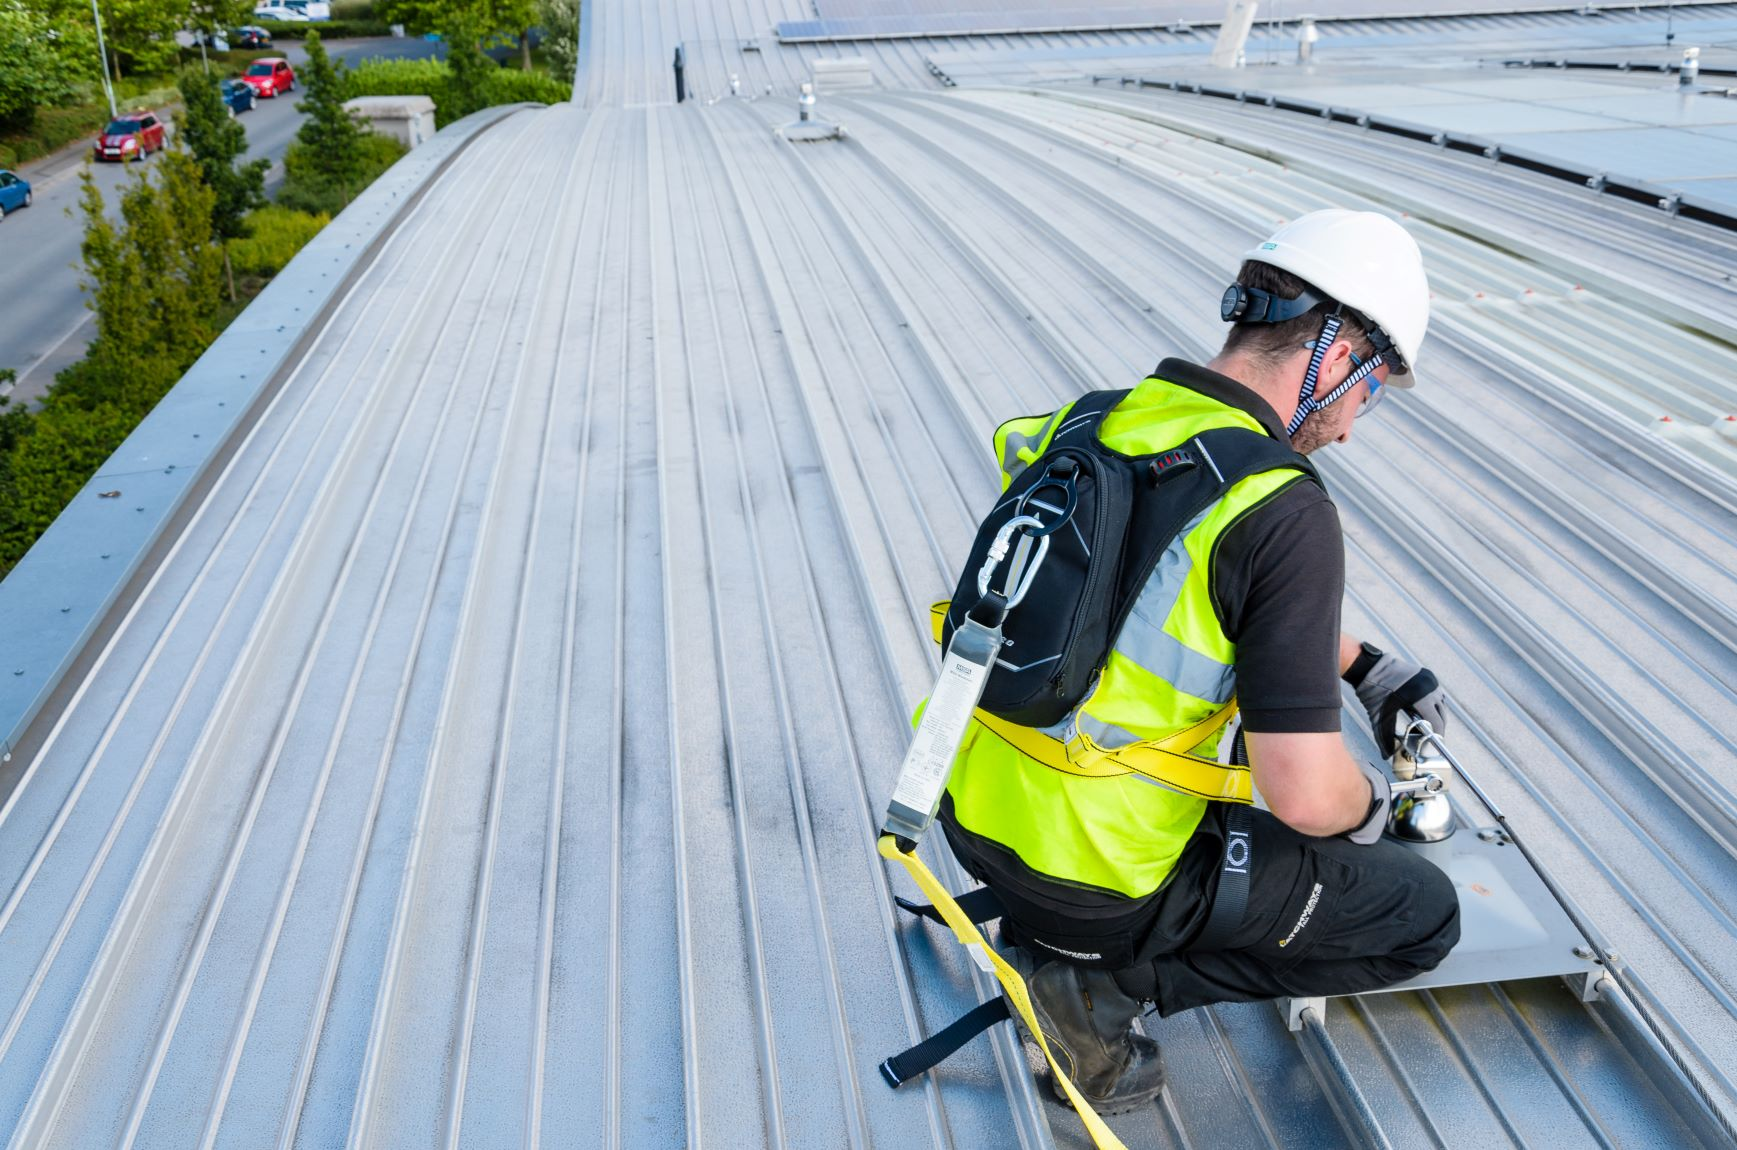 Fall protection cost-cutting: a step too far?